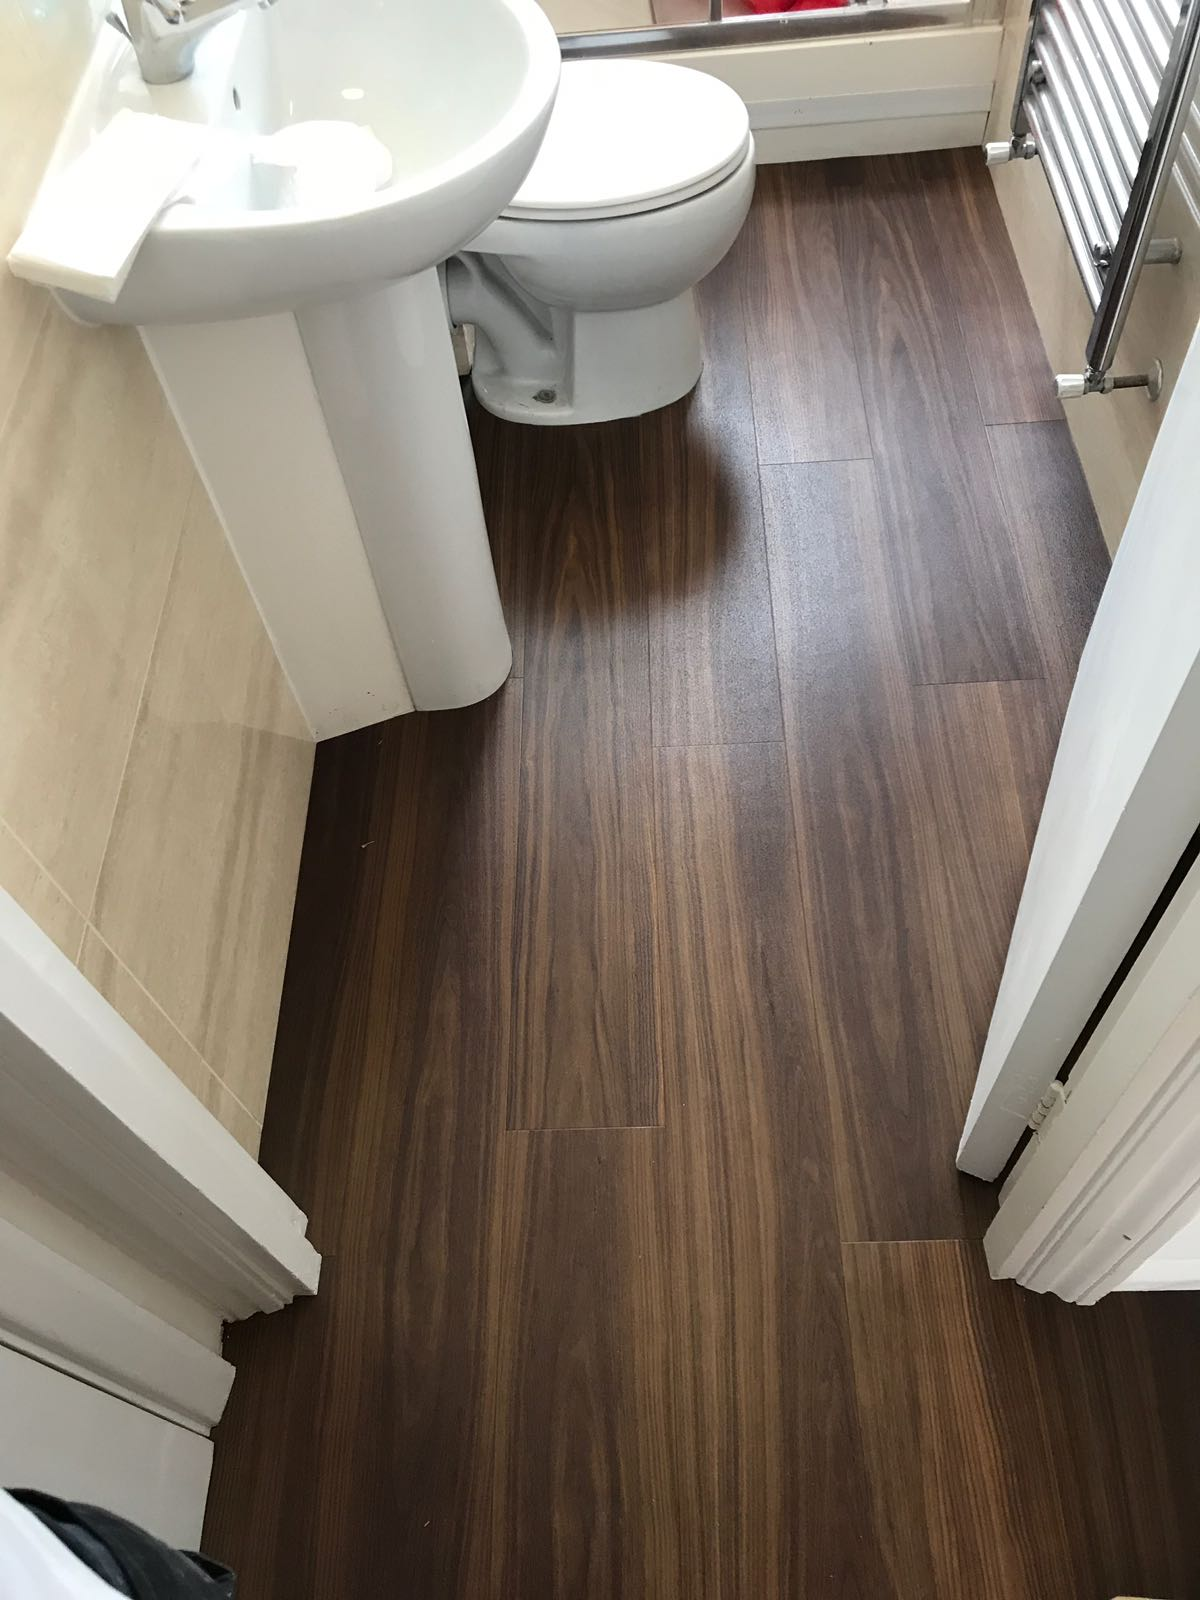 2018-04-24_Amtico Flooring Installed In Chelsea Residence (5)